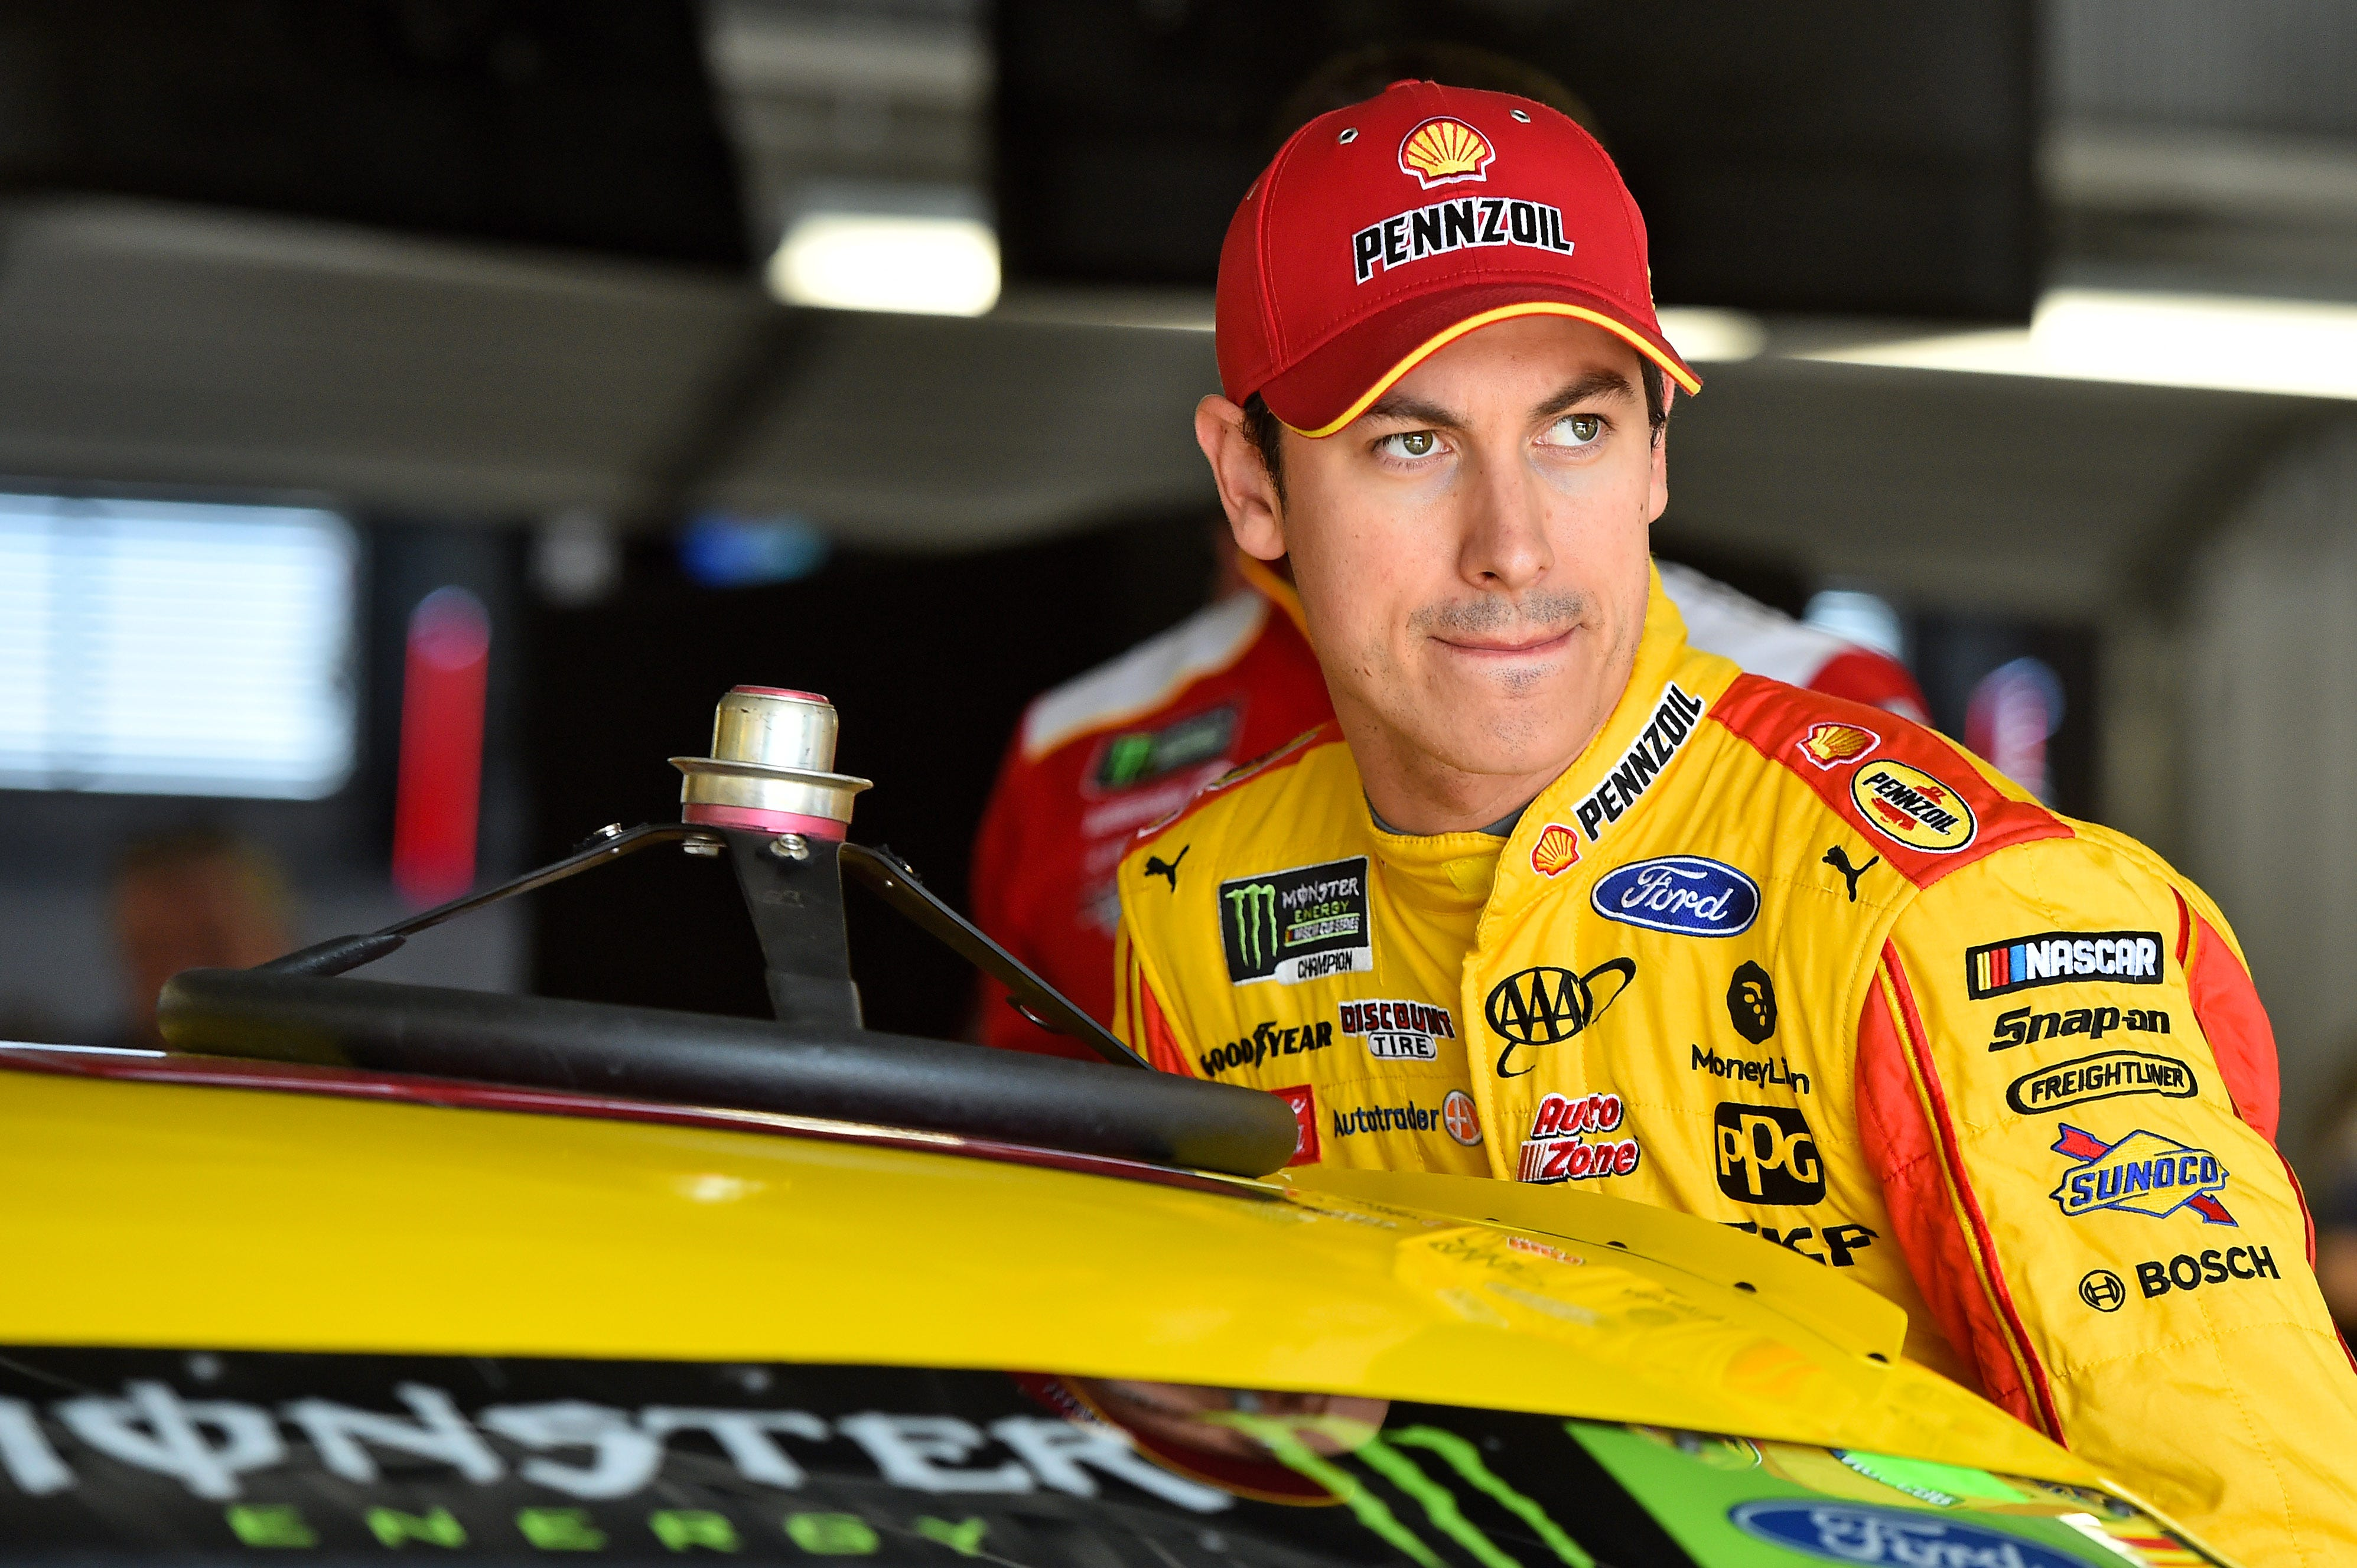 Opinion: With elimination race on deck, NASCAR champ Joey Logano could have his hands full